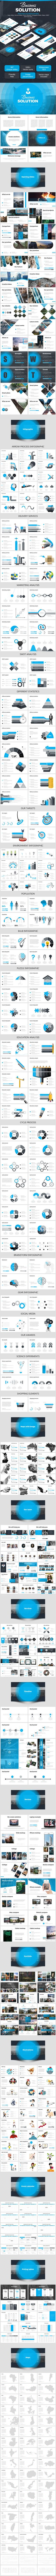 Connectivity PowerPoint Templates and Backgrounds | Free Blue ...